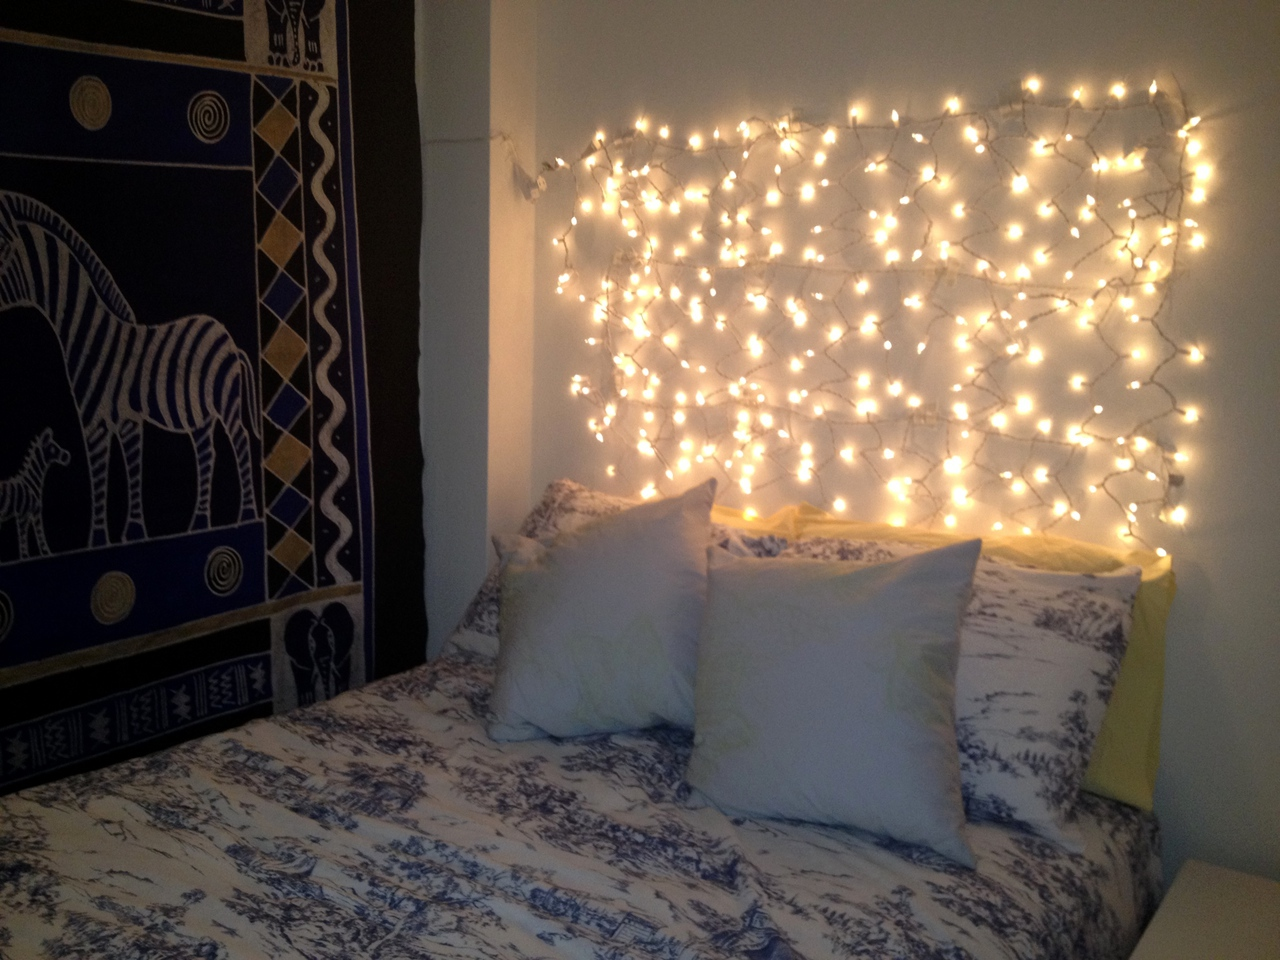 Bedroom Decoration Charming Flickering Led Lights As Cool Lighting Wall Decor Well Queen Single Beds And Cushions Decorate Small Decors Vivid Ceilin Jpg 3264 2448 Discovered By Sarah Ra